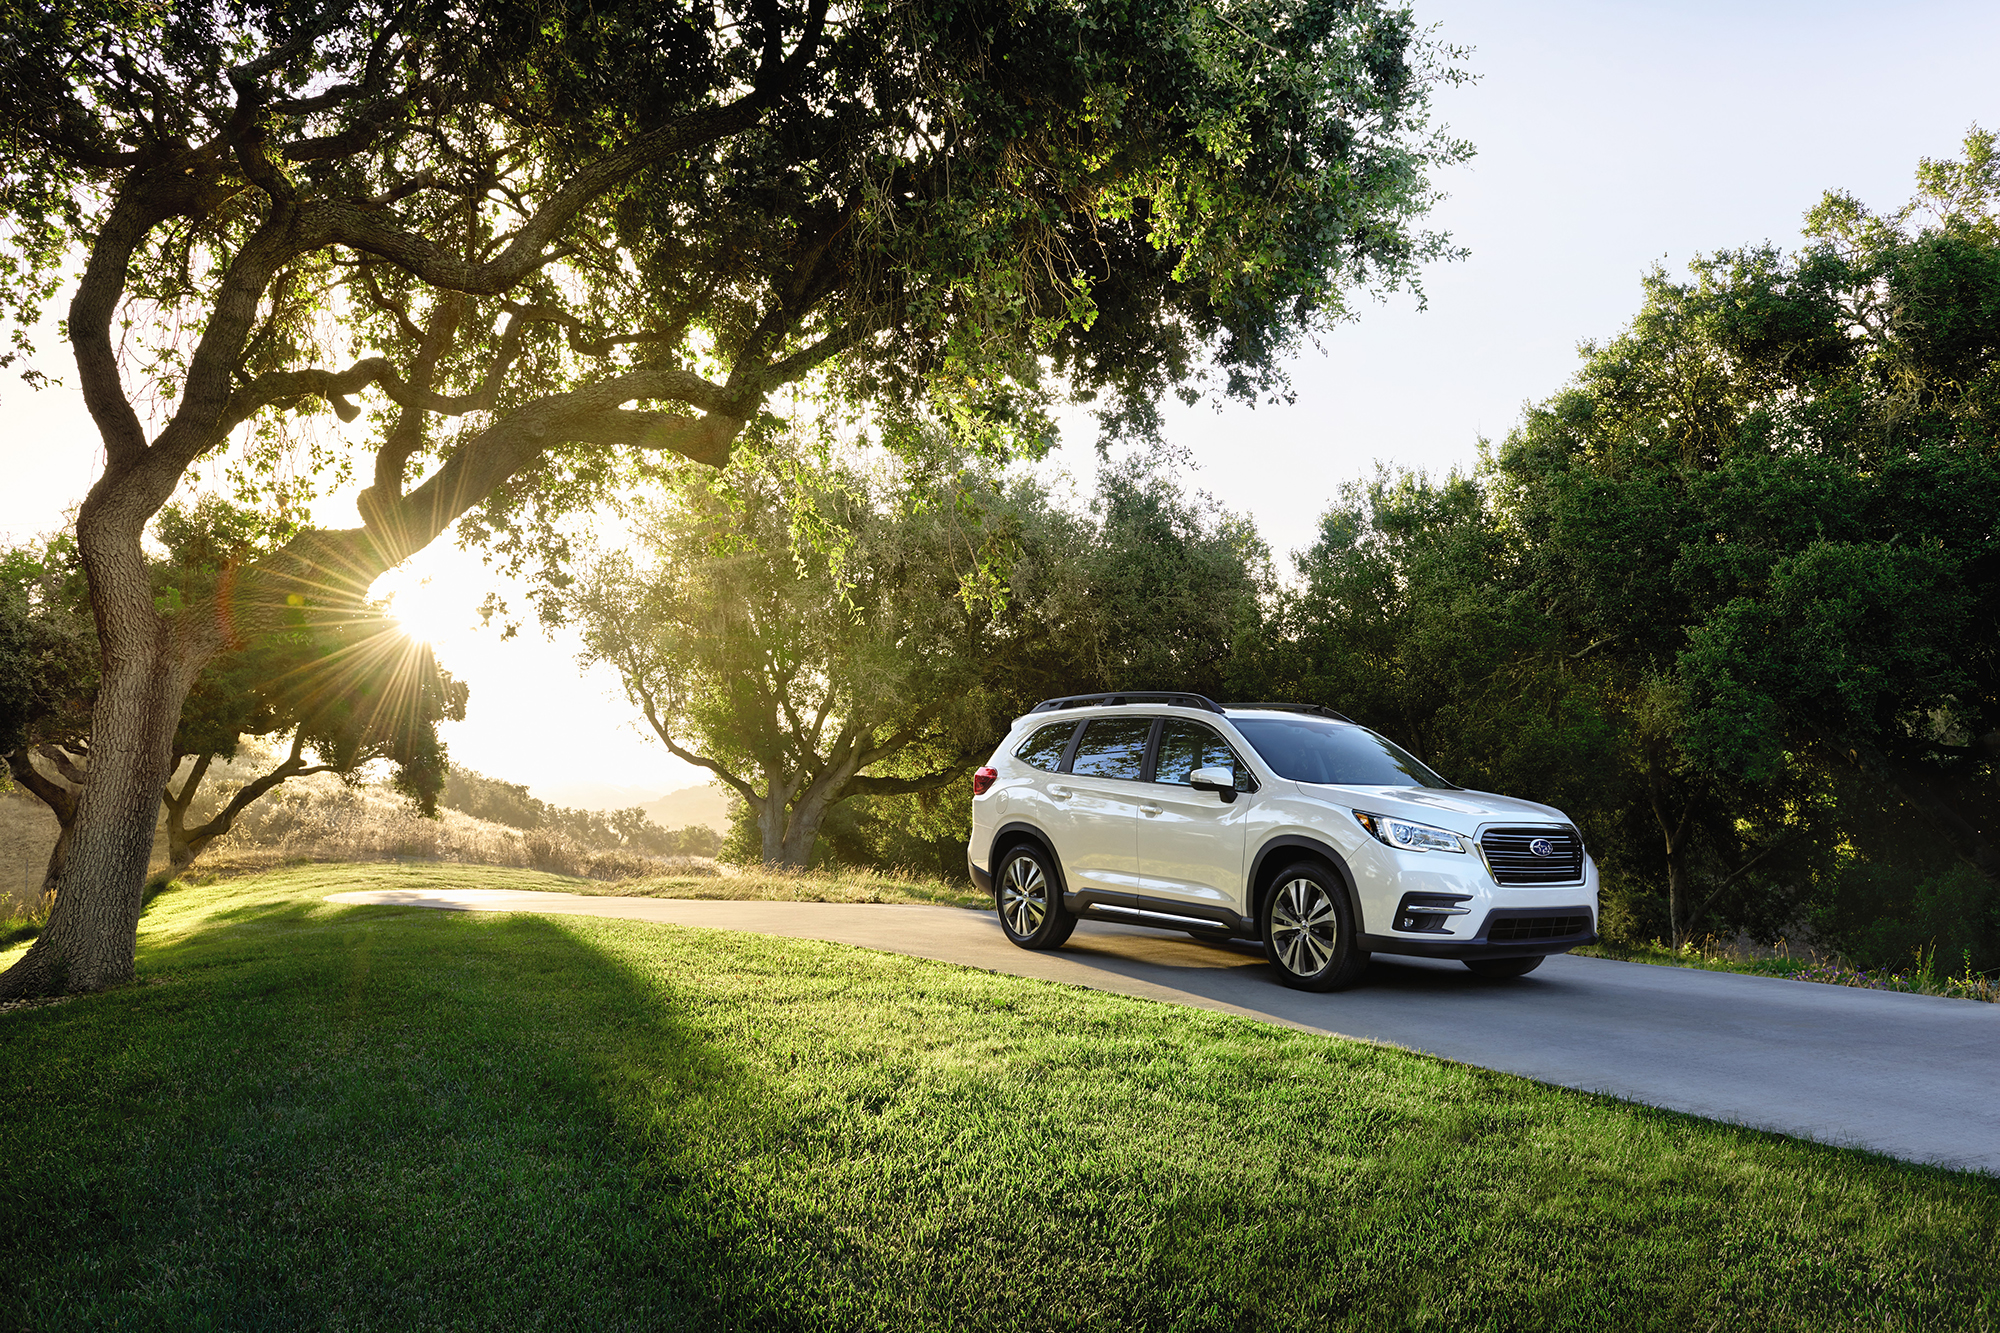 Subaru Ascent: Which Should You Buy, 2020 or 2021?